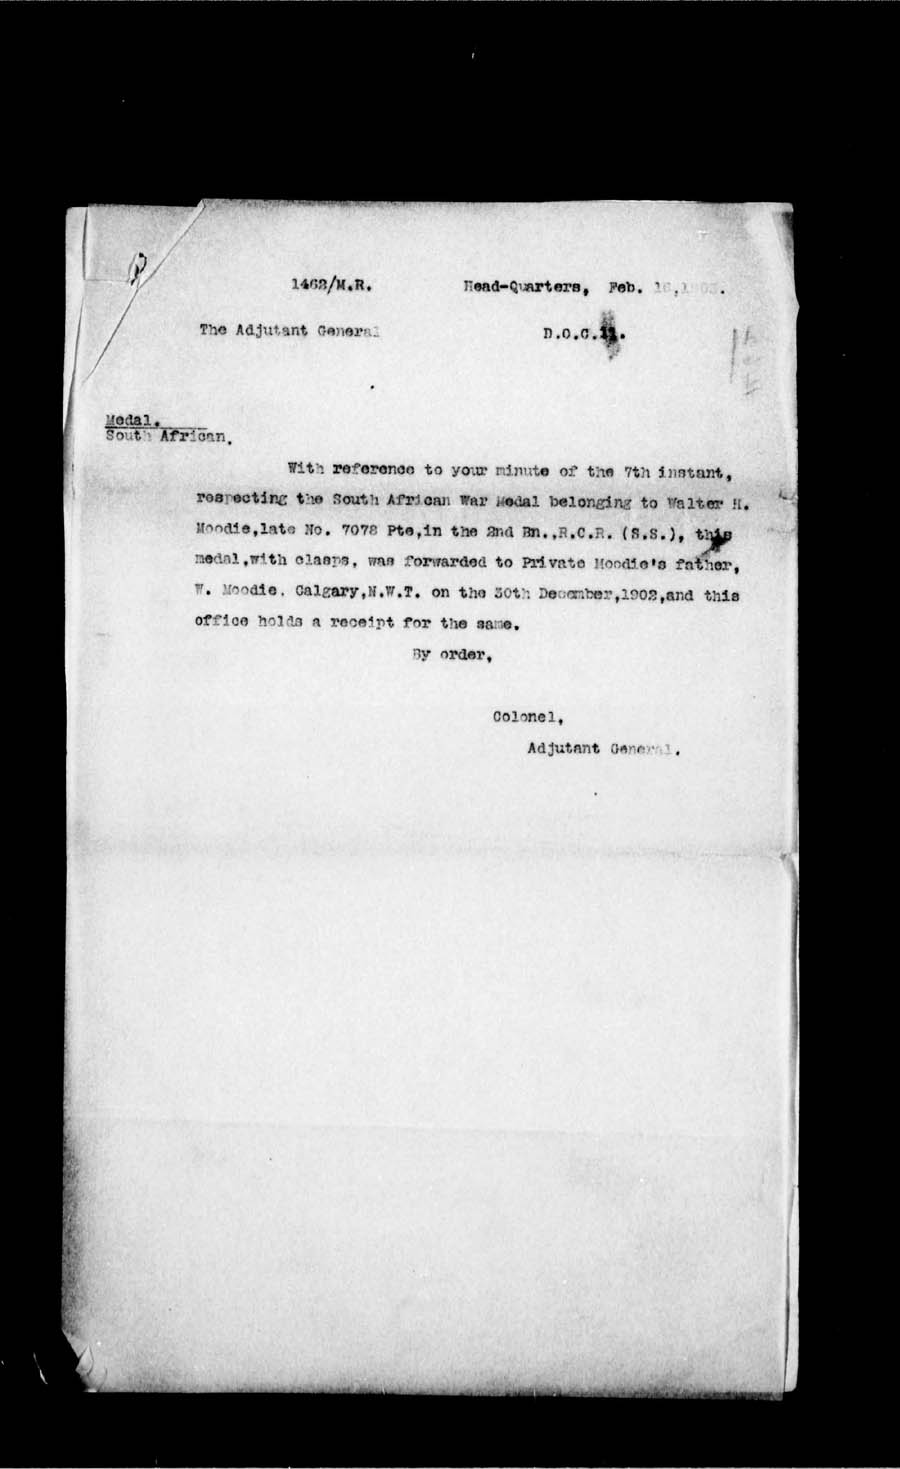 Digitized page of Boer War for Image No.: e002186728